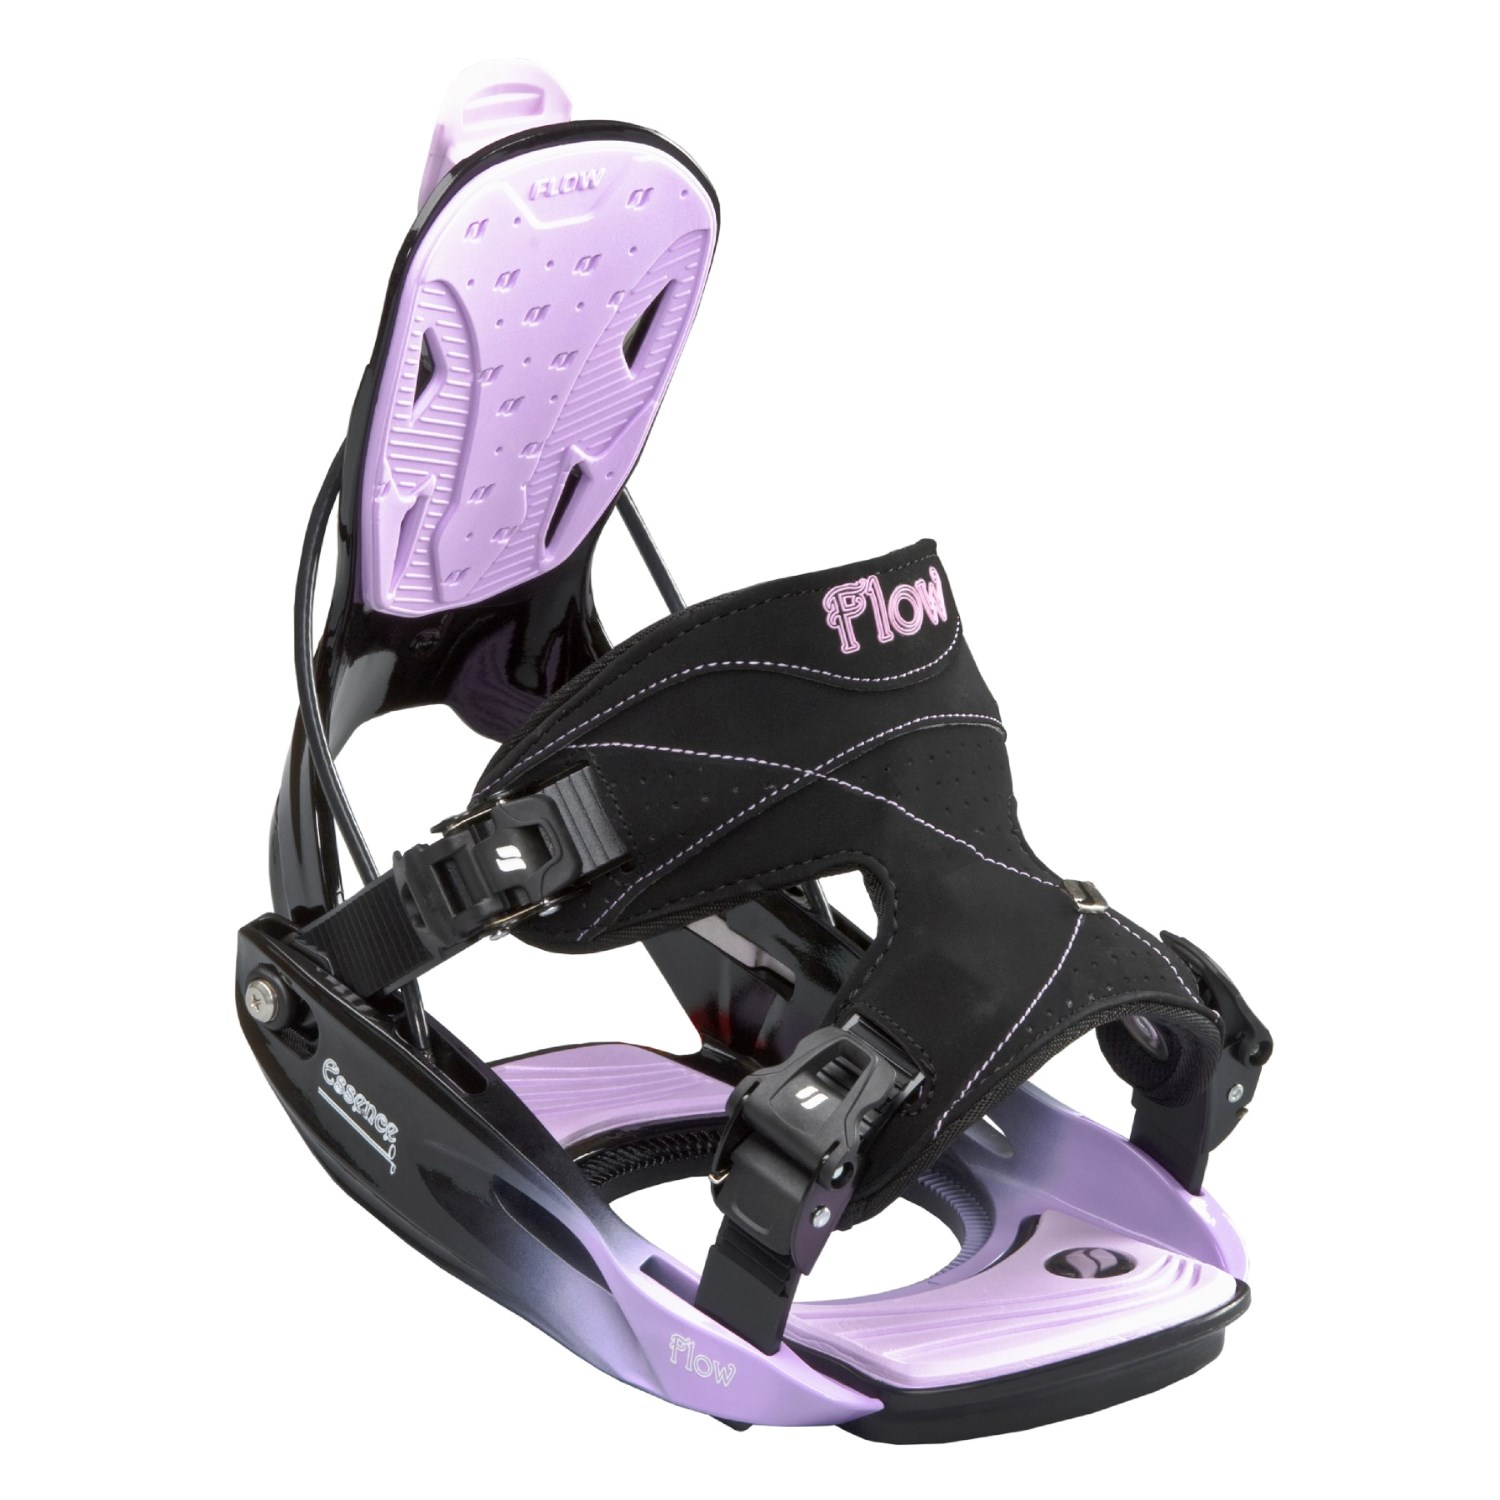 Flow Essence Snowboard Bindings (For Women) 75528